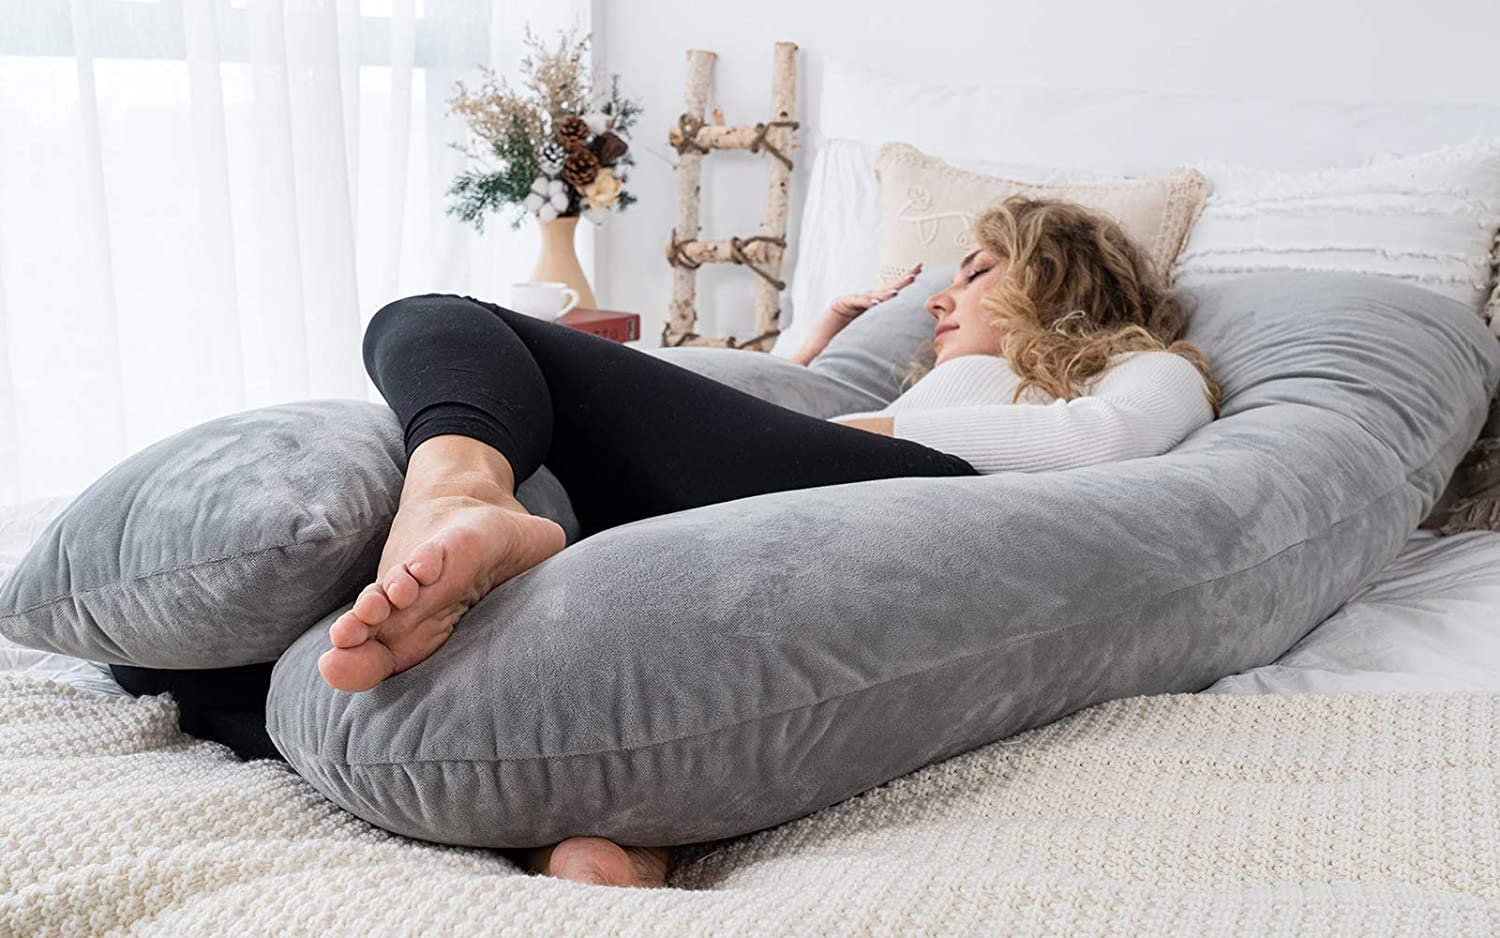 60 inch Pregnancy Pillow U Shaped, Full Body Pillow for Pregnant Women/Side Sleepers, maternity Pillow with Velvet Cover, Gray enlarge